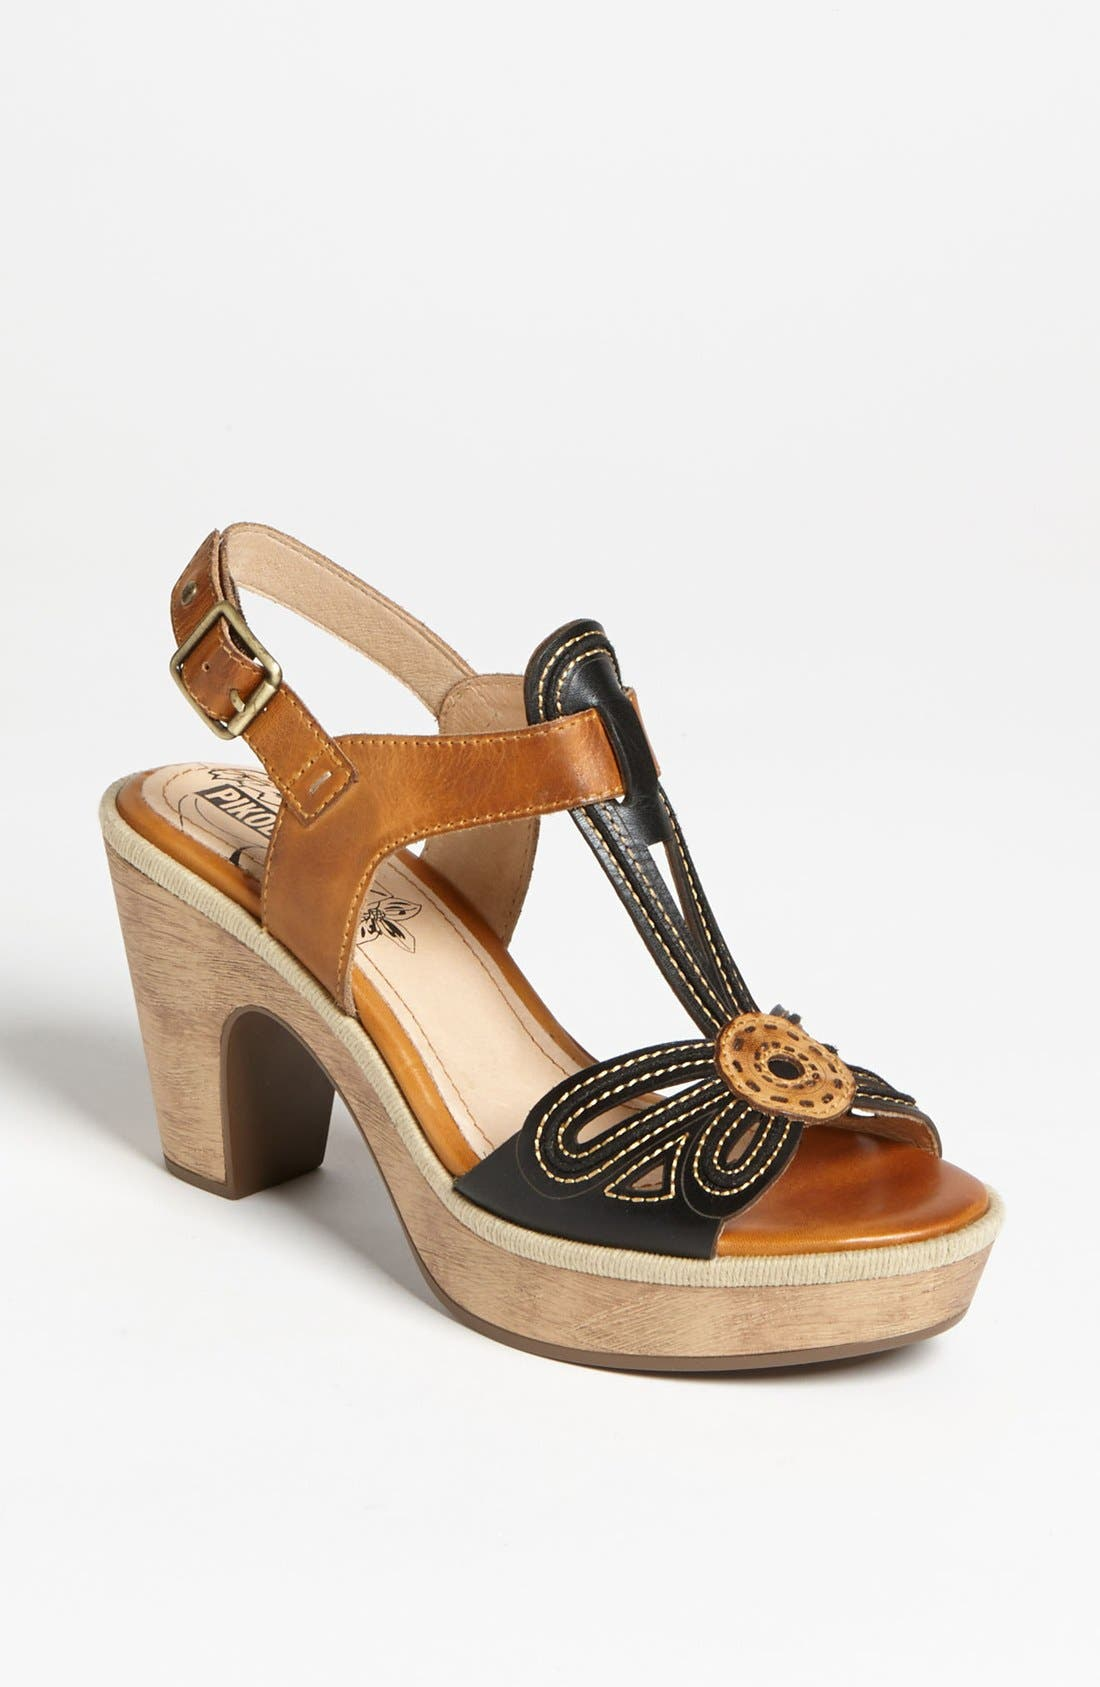 Alternate Image 1 Selected - PIKOLINOS 'Trinidad' T-Strap Sandal